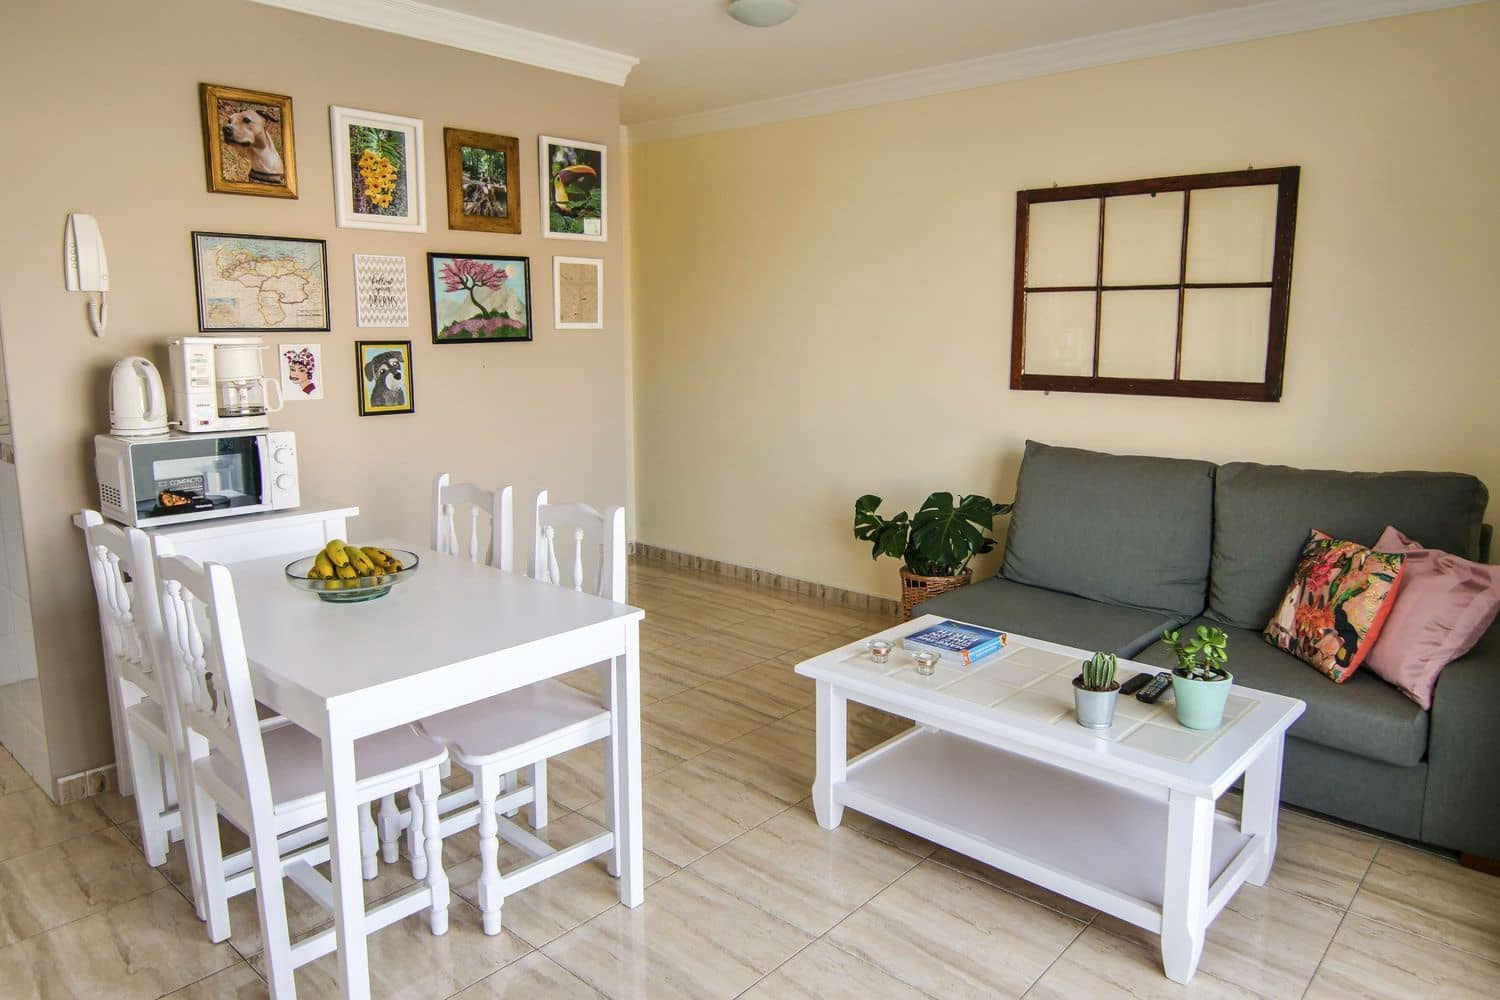 2 bedroom Apartment for sale in Guargacho - € 110,000 (Ref: 6339654)